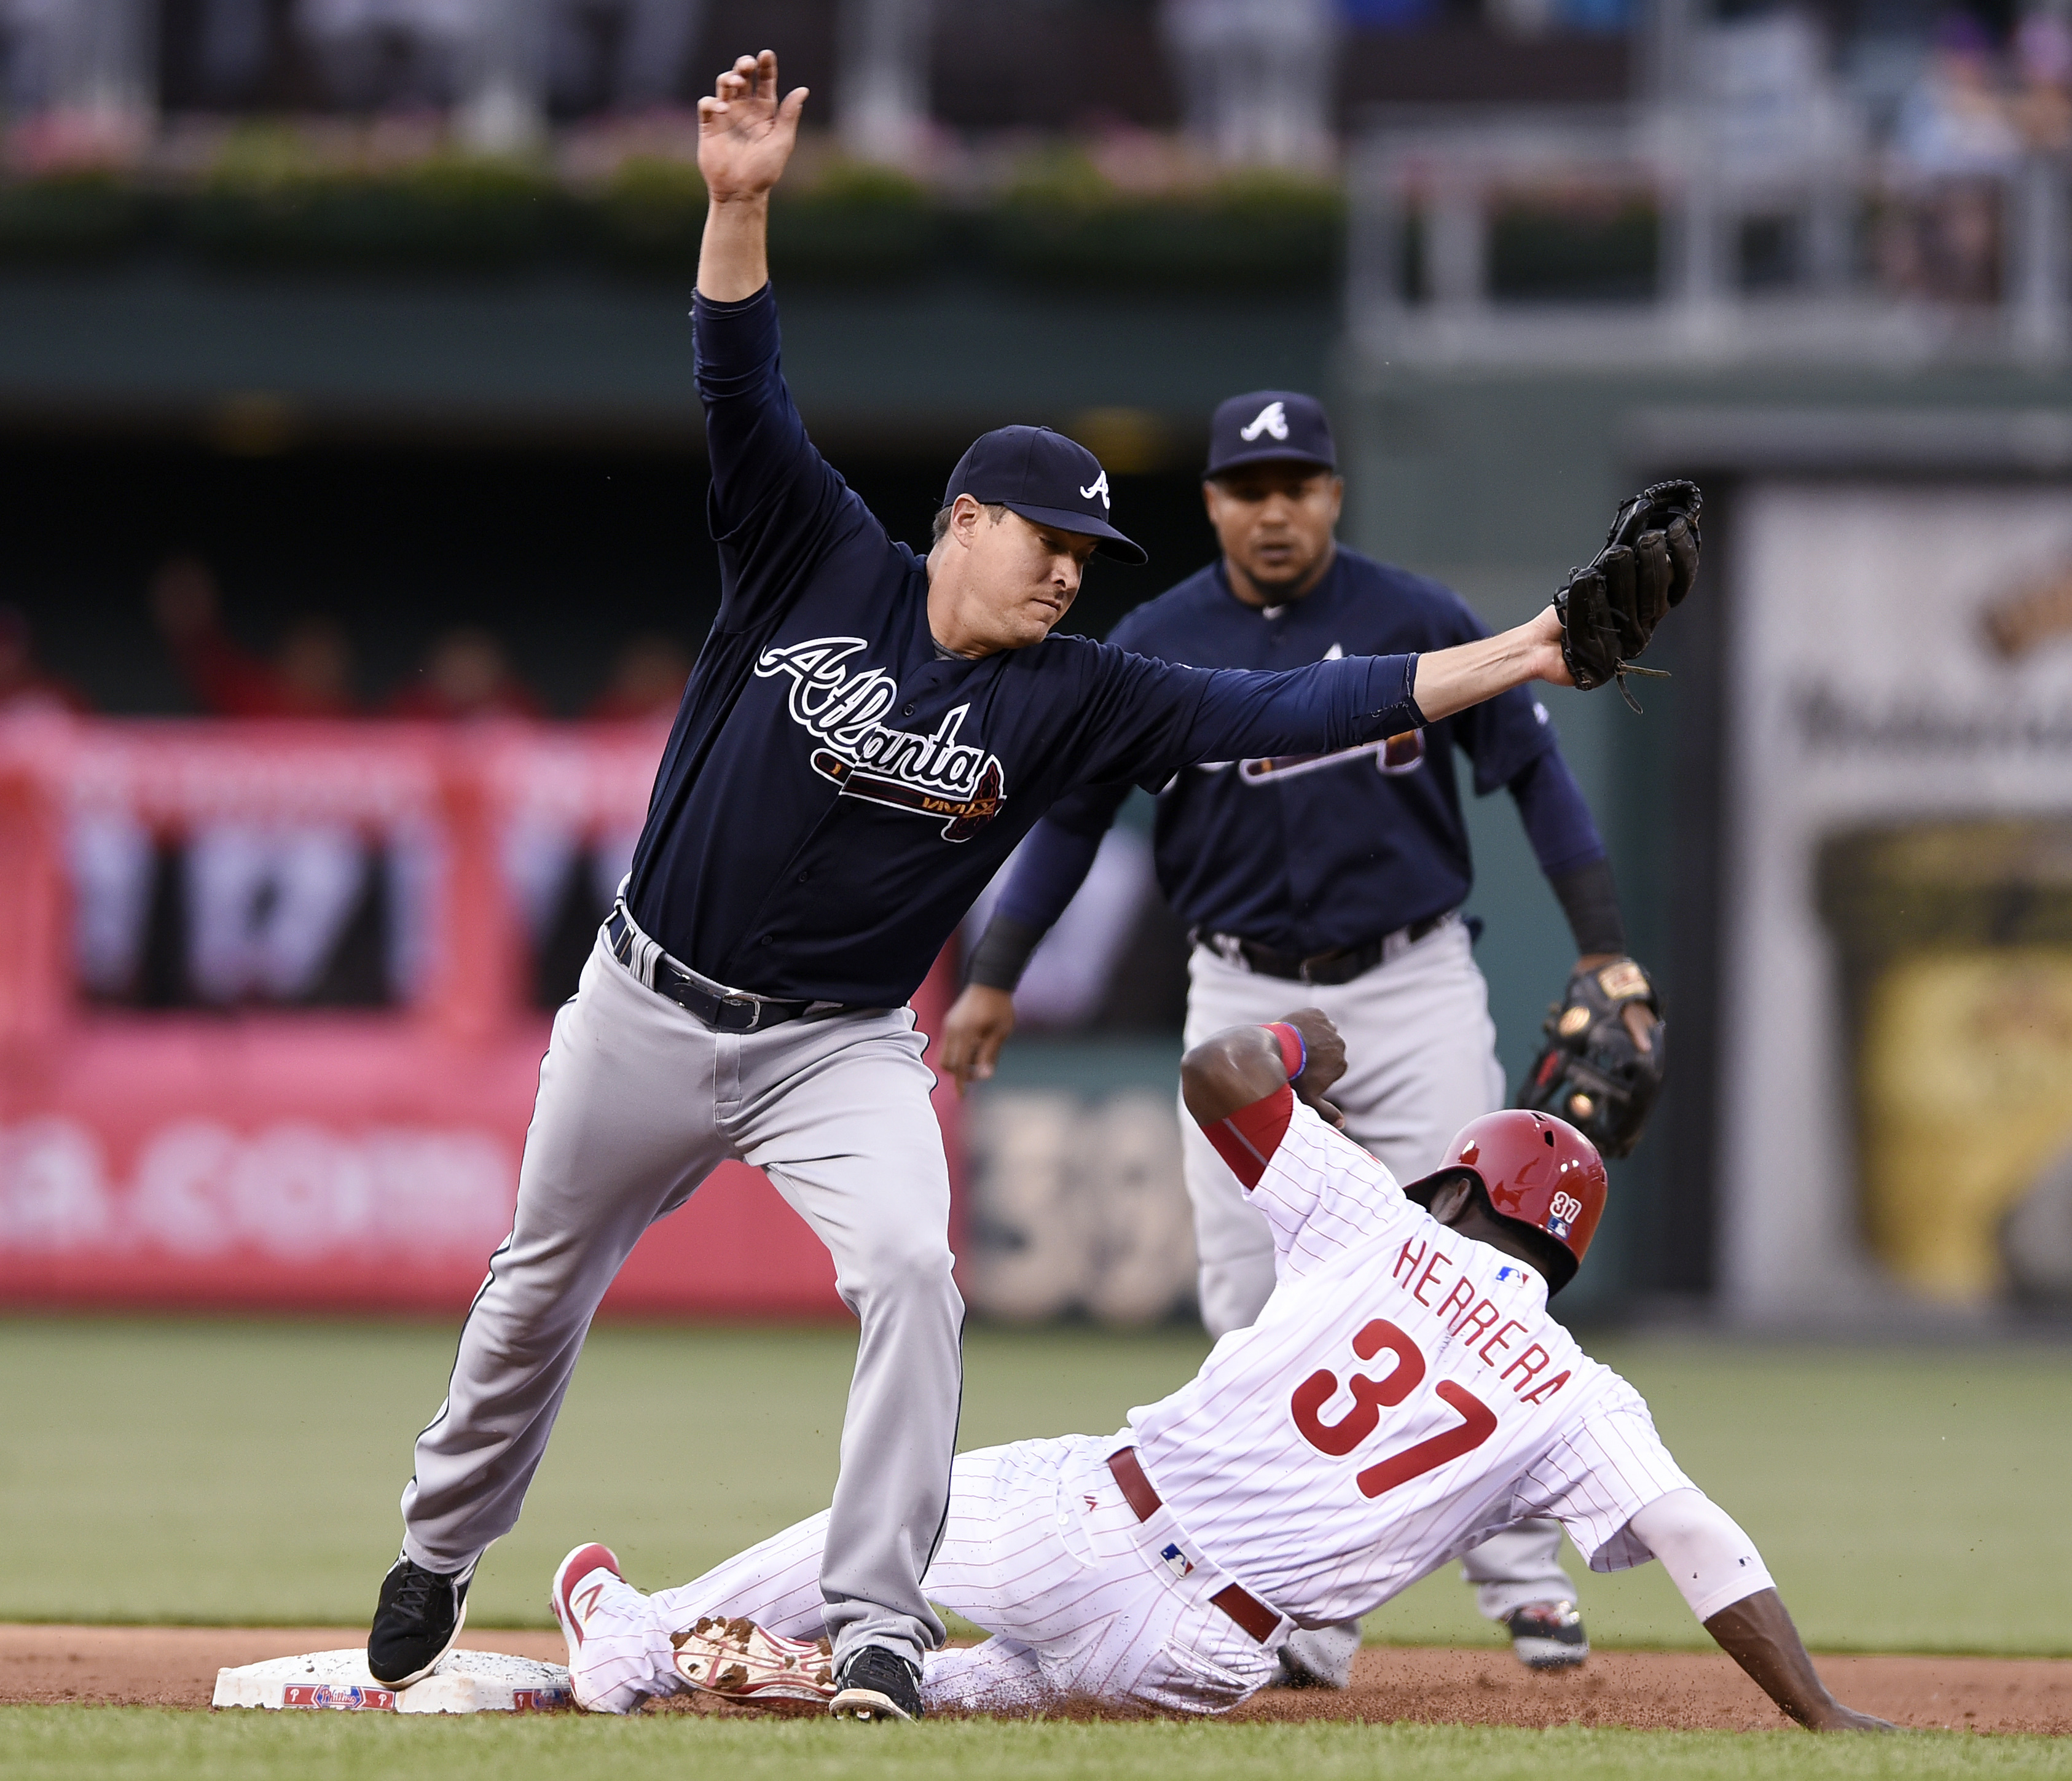 Atlanta Braves second baseman Kelly Johnson avoids colliding with Philadelphia Phillies' Odubel Herrera (37) who is forced out on a Cesar Hernandez ground out in the first inning of a baseball game on Friday, May 20, 2016, in Philadelphia. (AP Photo/Micha